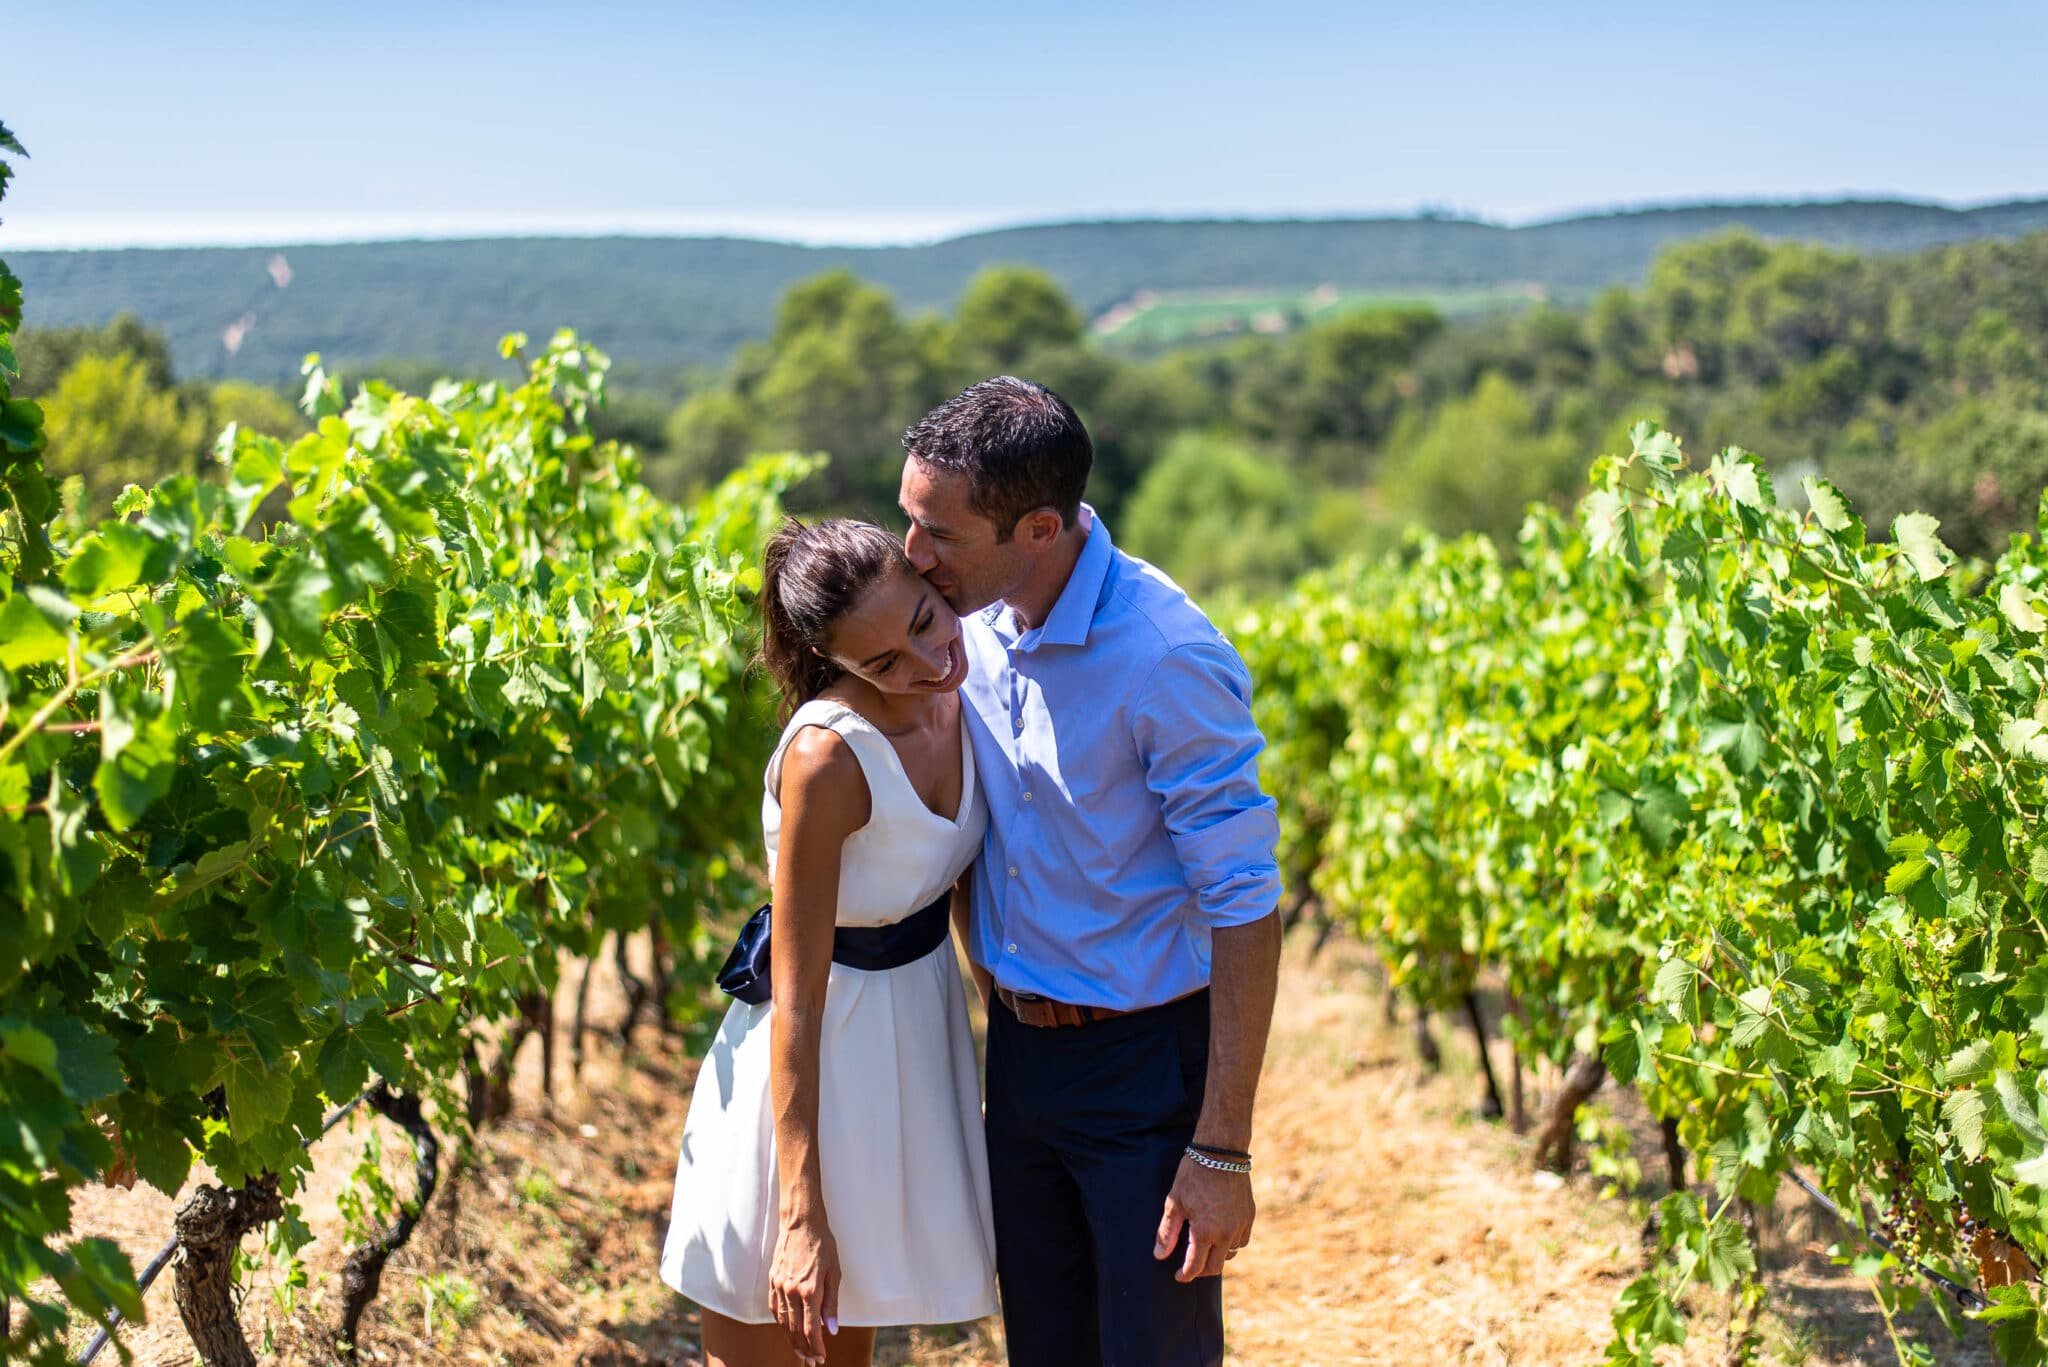 The newlyweds enjoy a little time in the middle of the vineyards of Provence.